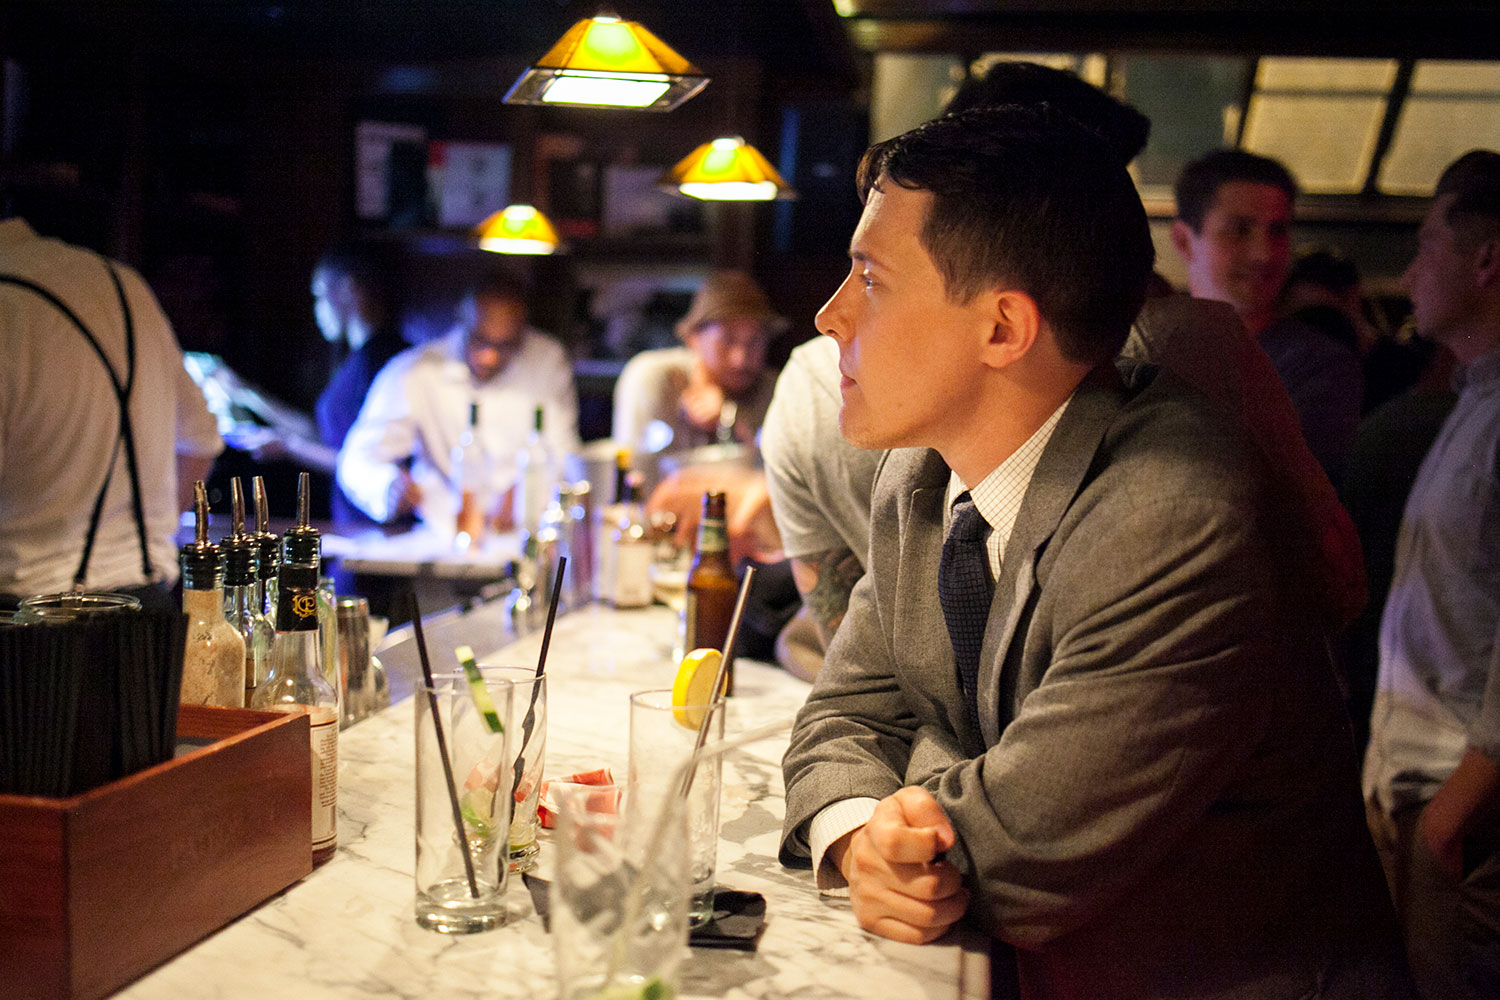 The Handy Liquor Bar, dowstairs, is also owned by Levine. (Samira Bouaou/Epoch Times)